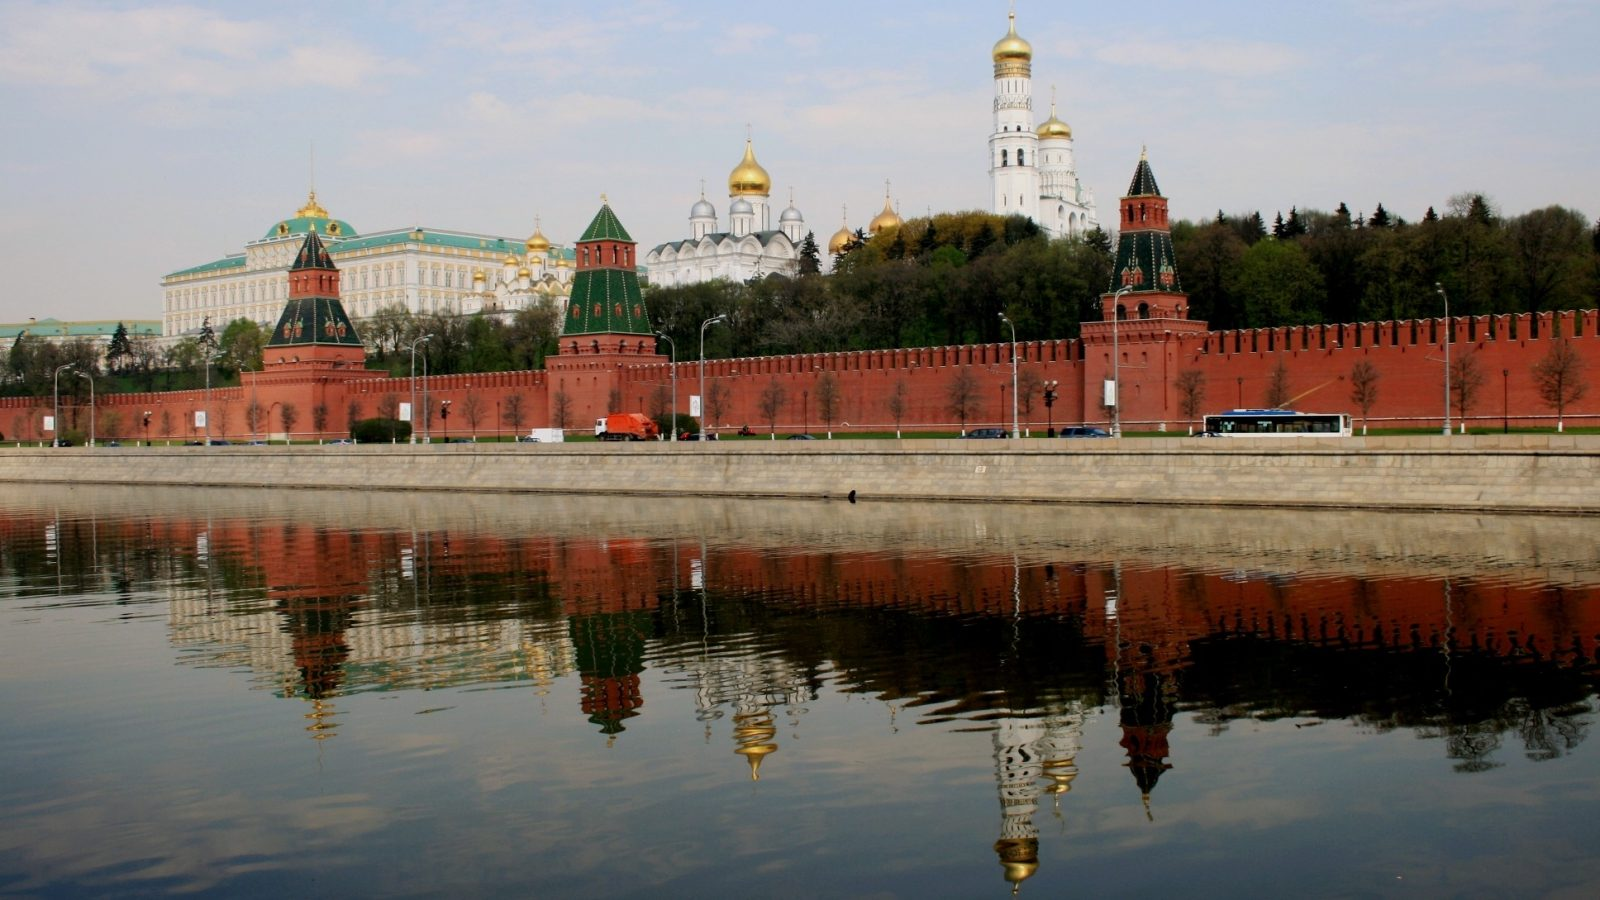 The Kremlin complex in Moscow